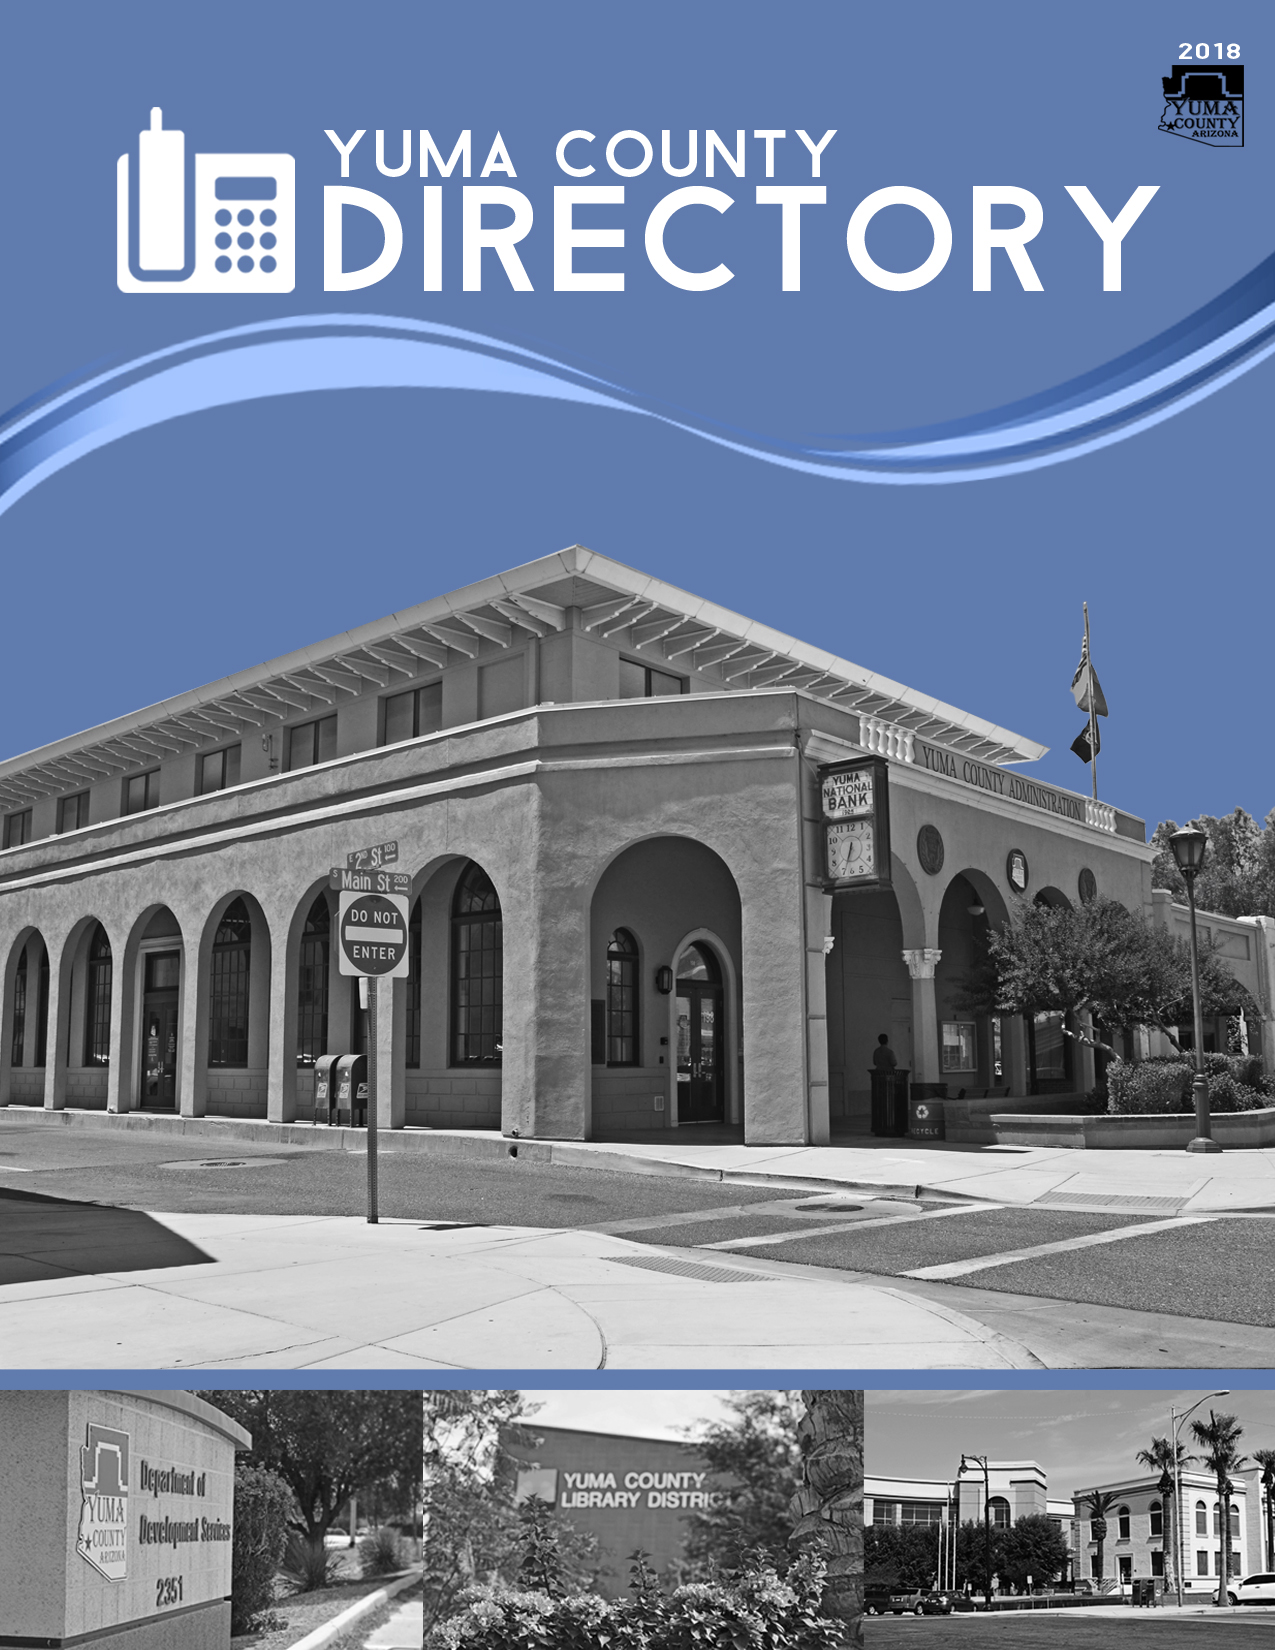 2018 phone directory cover shrunk